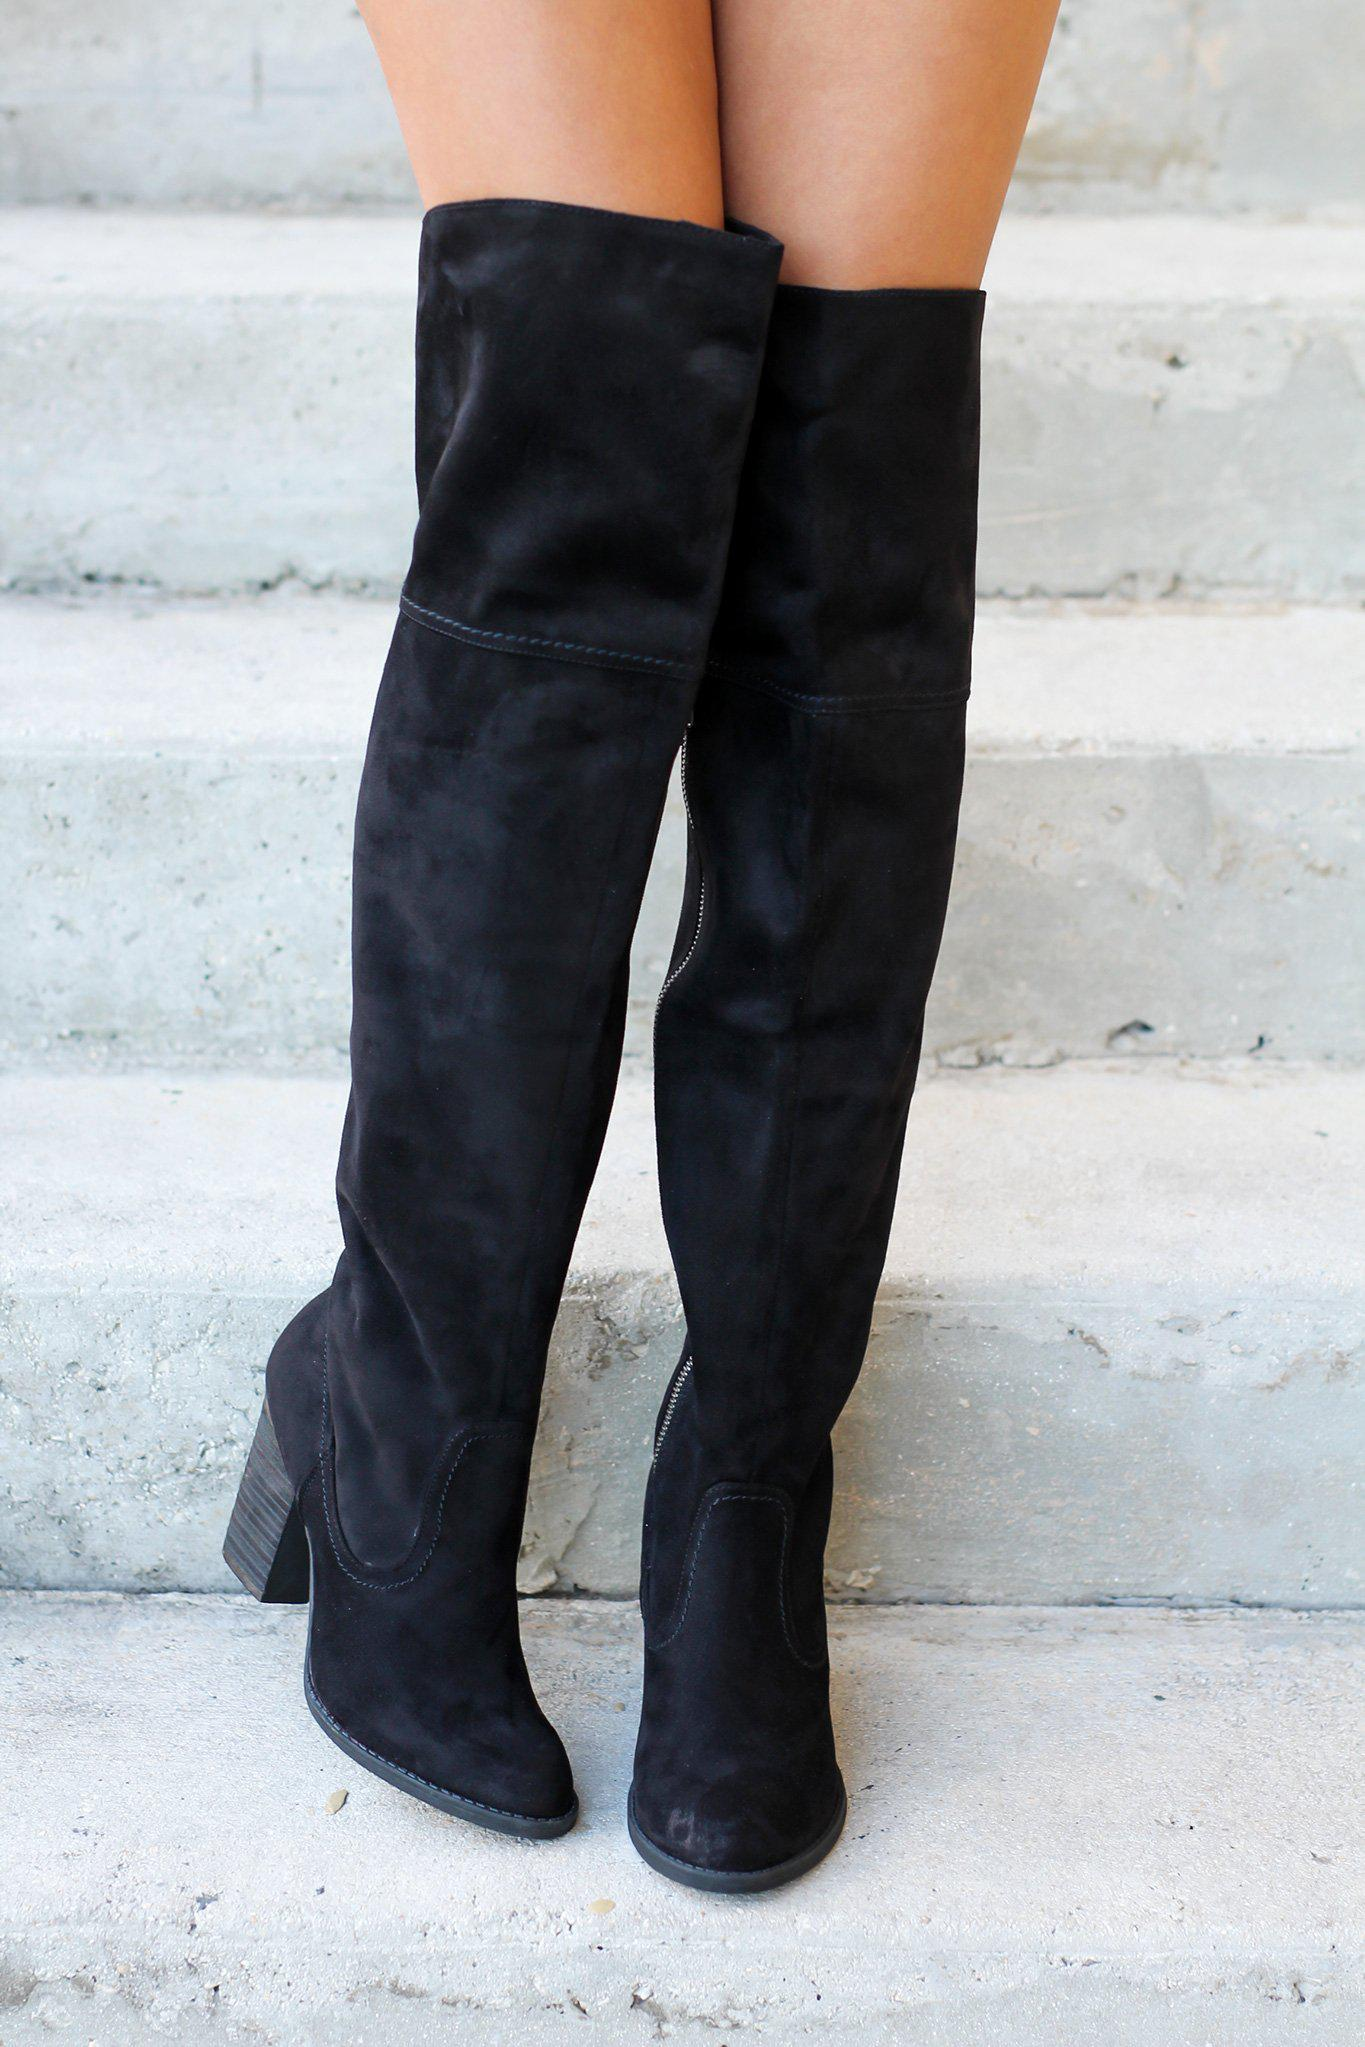 Andra Black Knee High Boots | Online